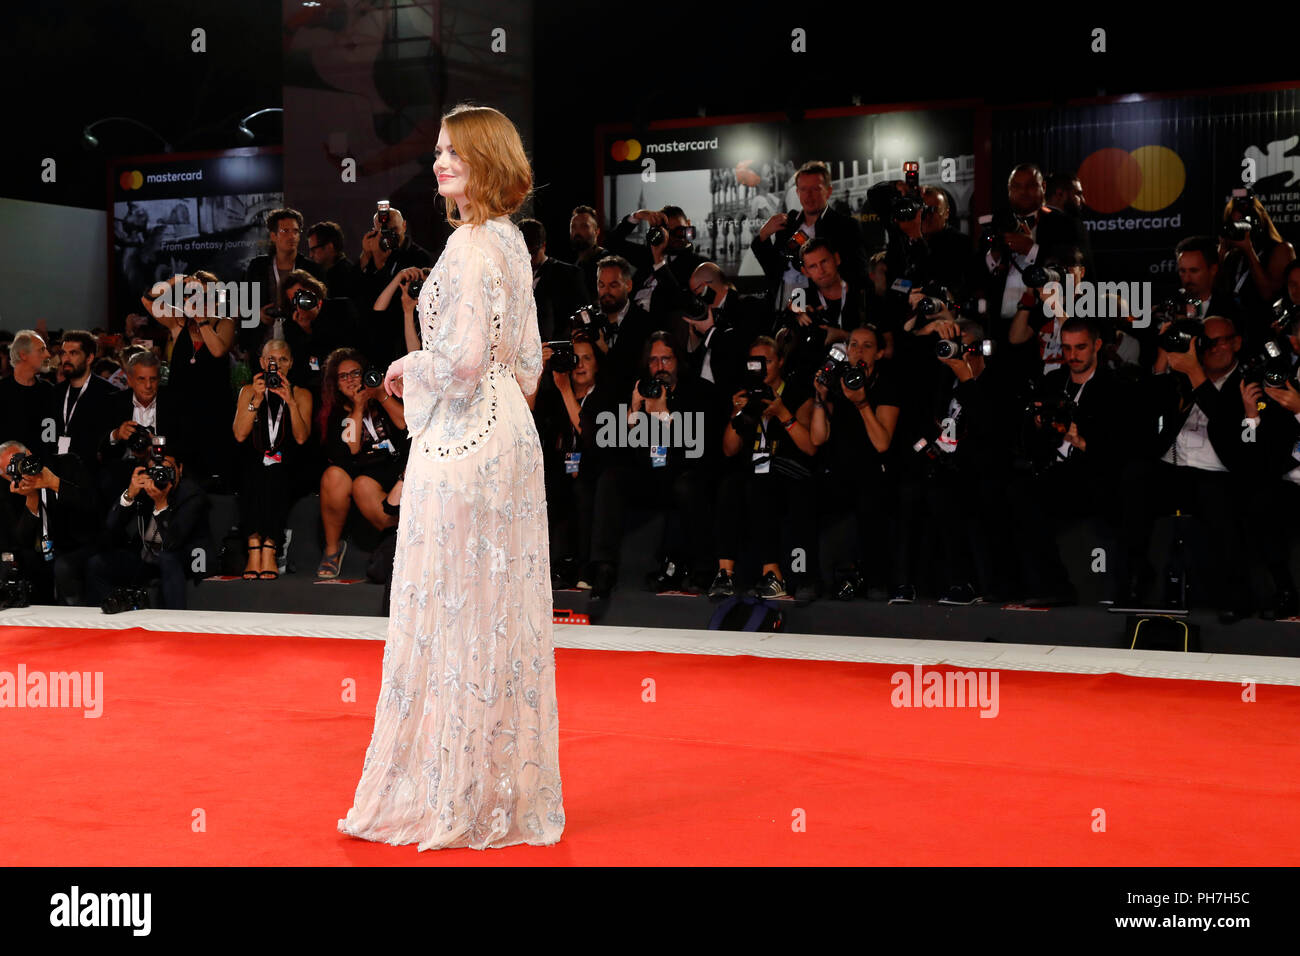 VENICE, ITALY - AUGUST 30: Emma Stone arrives at the 'The Favourite' premiere during the 75th Venice Film Festival at the Palazzo del Cinema on August 30, 2018 in Venice, Italy.  Credit: John Rasimus/MediaPunch  ***FRANCE, SWEDEN, NORWAY, DENARK, FINLAND, USA, CZECH REPUBLIC, SOUTH AMERICA ONLY*** - Stock Image